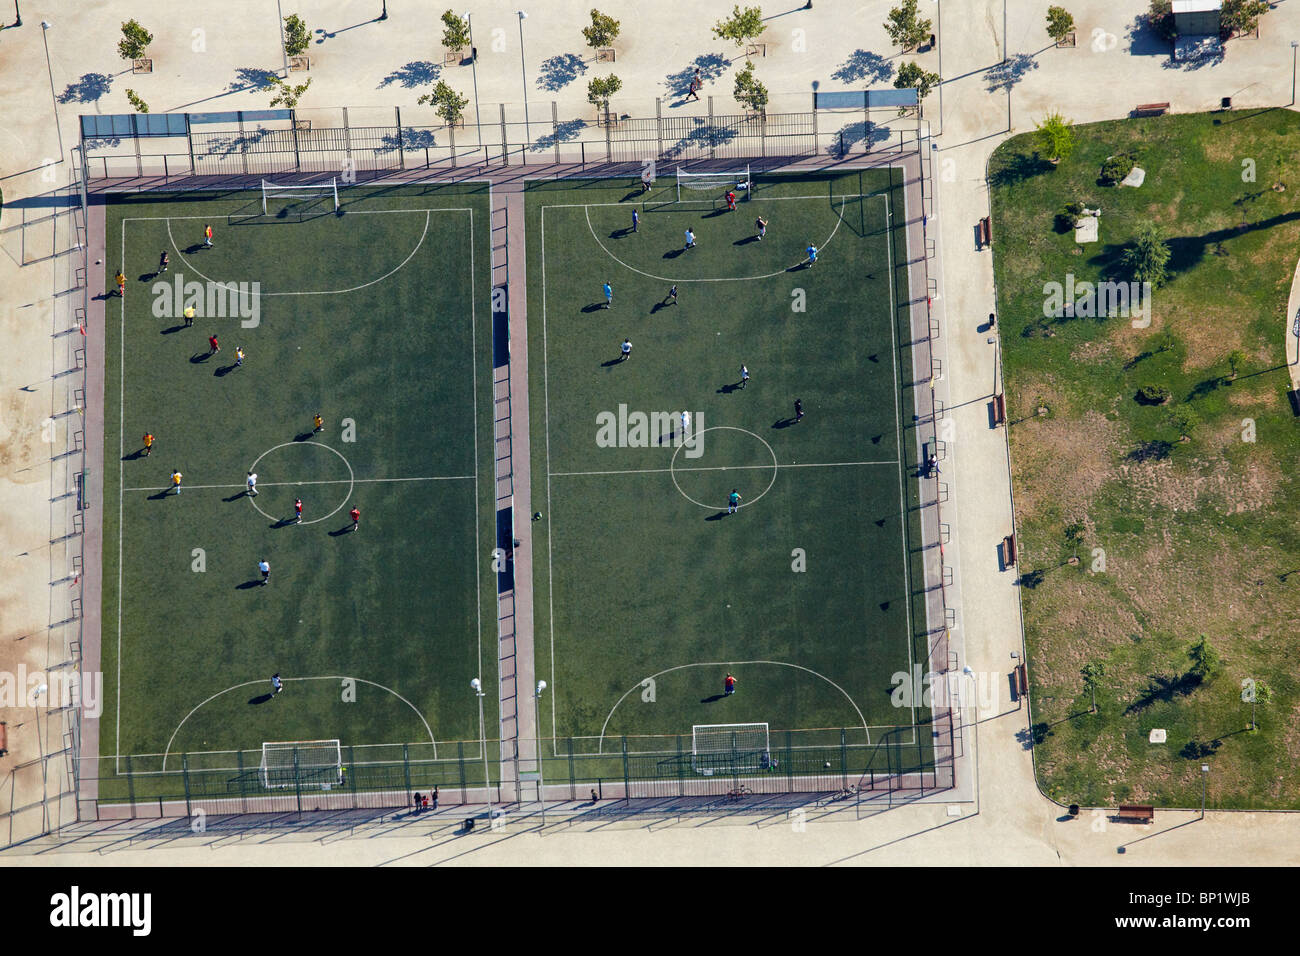 Football Fields, Santiago, Chile, South America - aerial - Stock Image